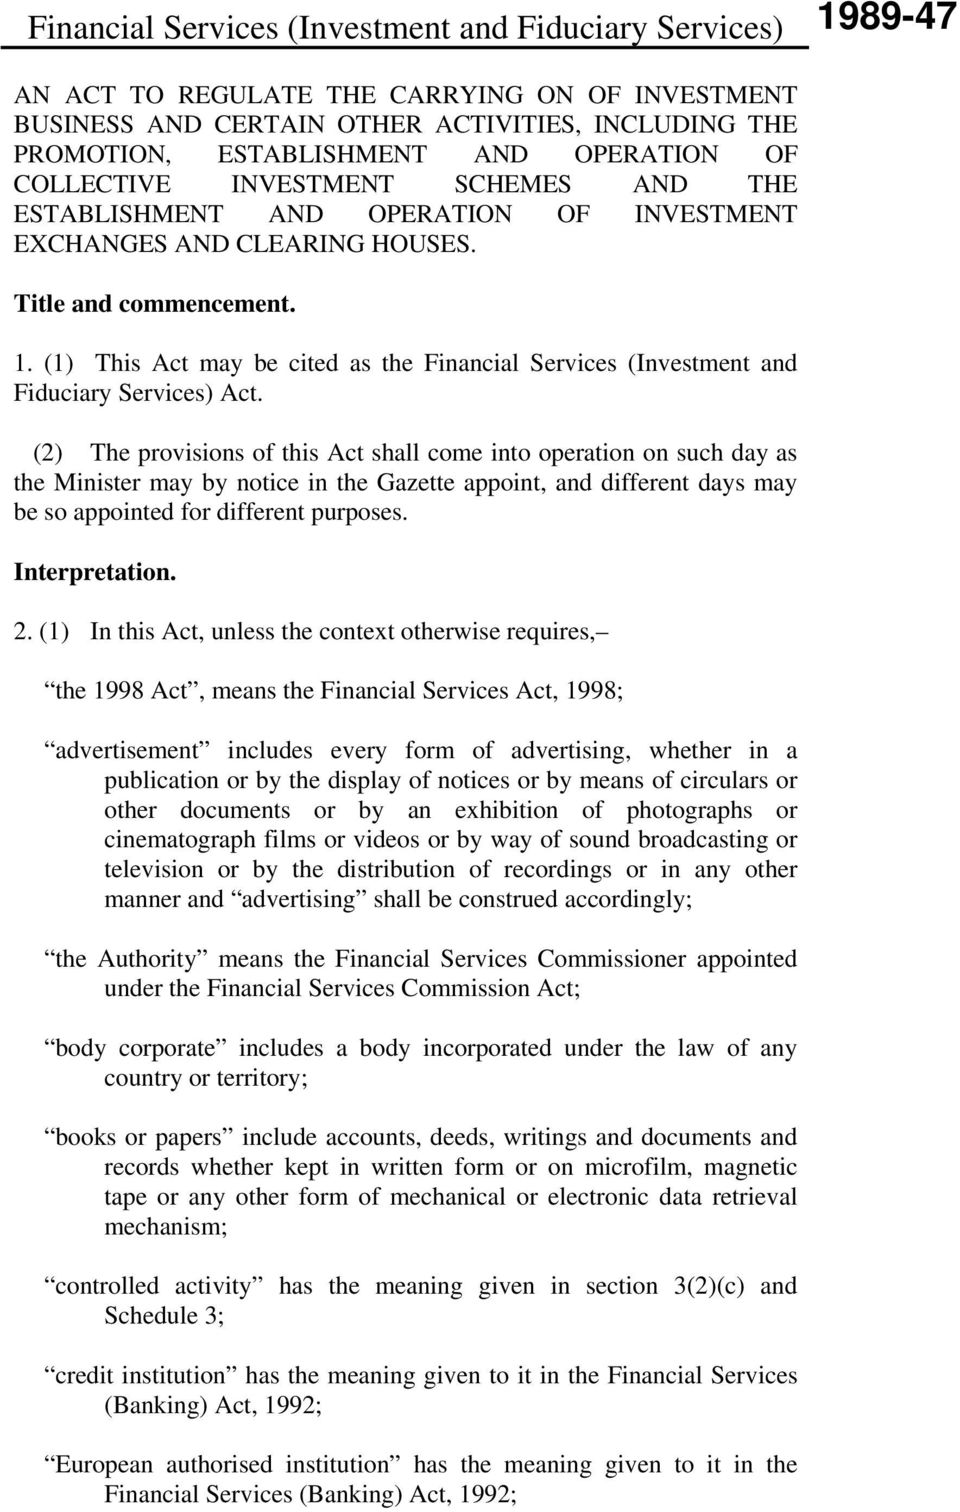 (2) The provisions of this Act shall come into operation on such day as the Minister may by notice in the Gazette appoint, and different days may be so appointed for different purposes.